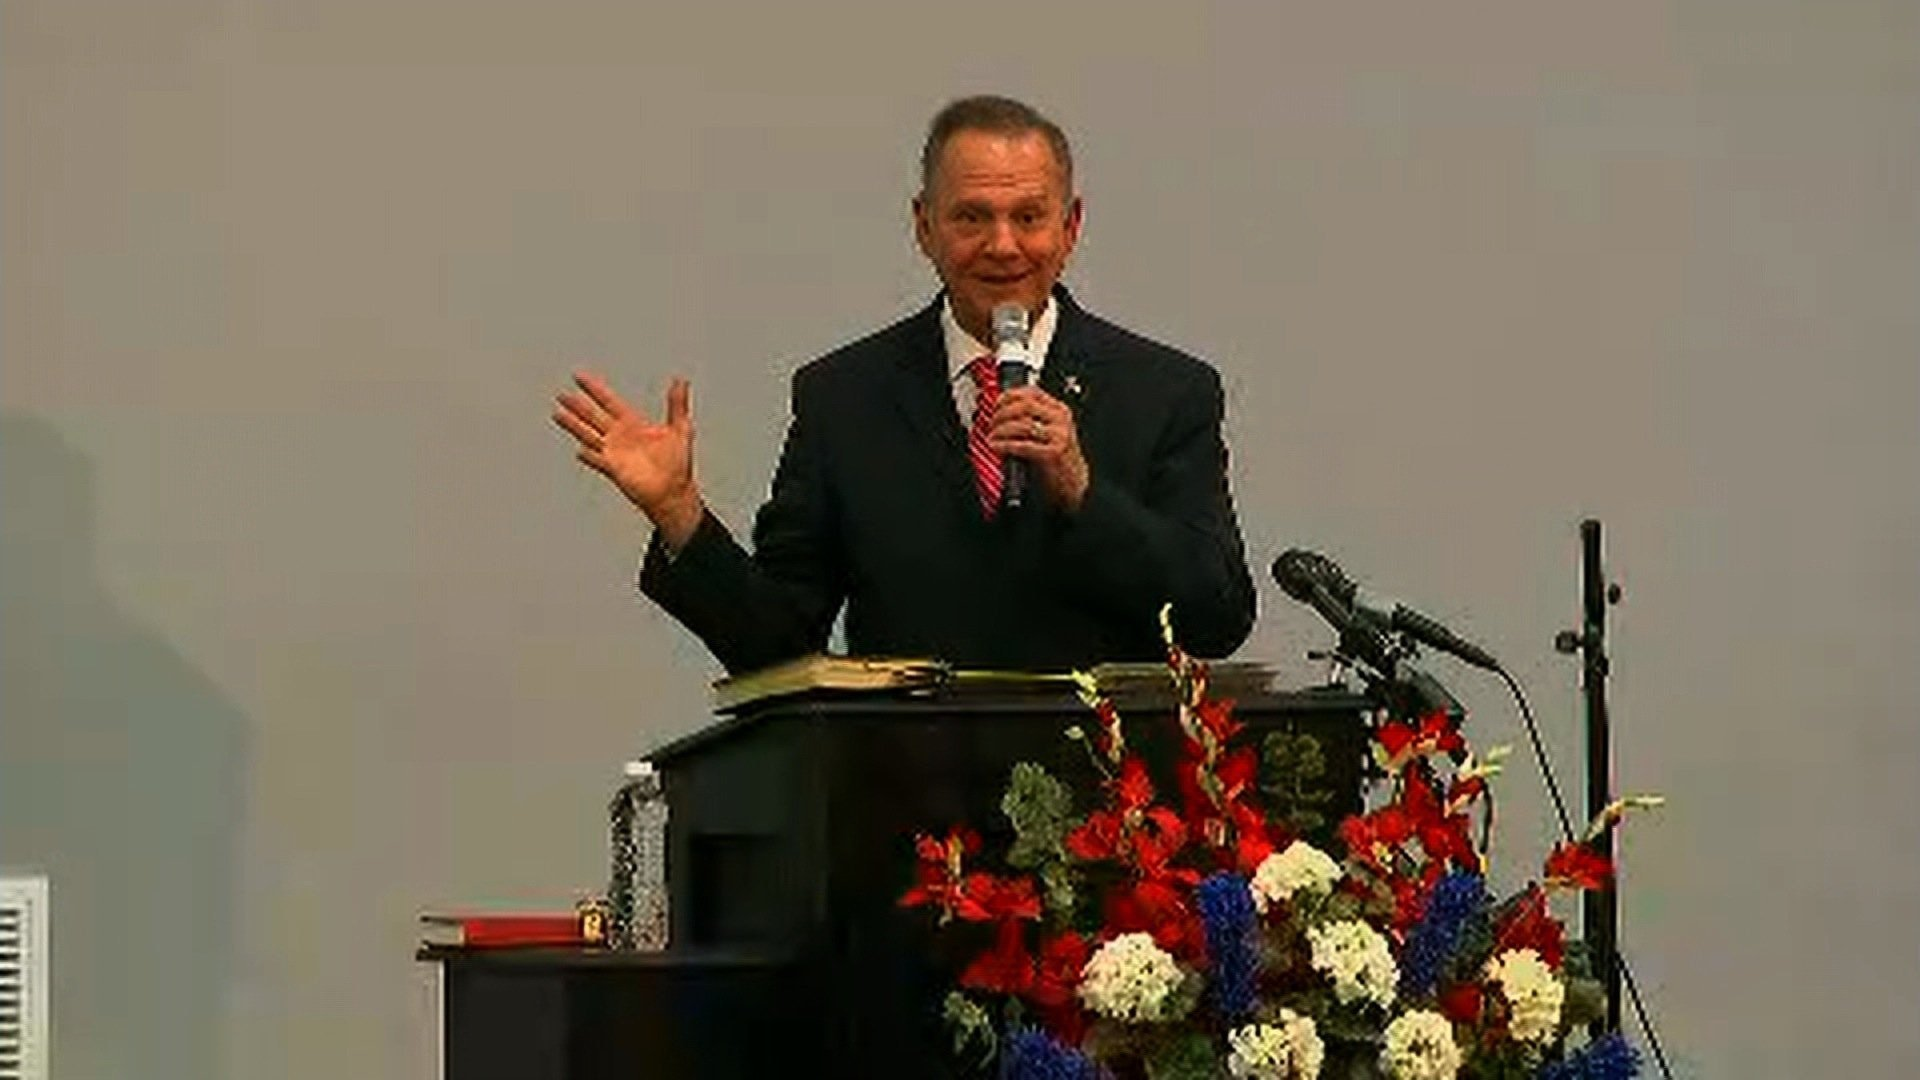 Alabama Republican Senate candidate Roy Moore says he's being hounded by the news media over sexual allegations against him, while briefly addressing the controversy Tuesday night.